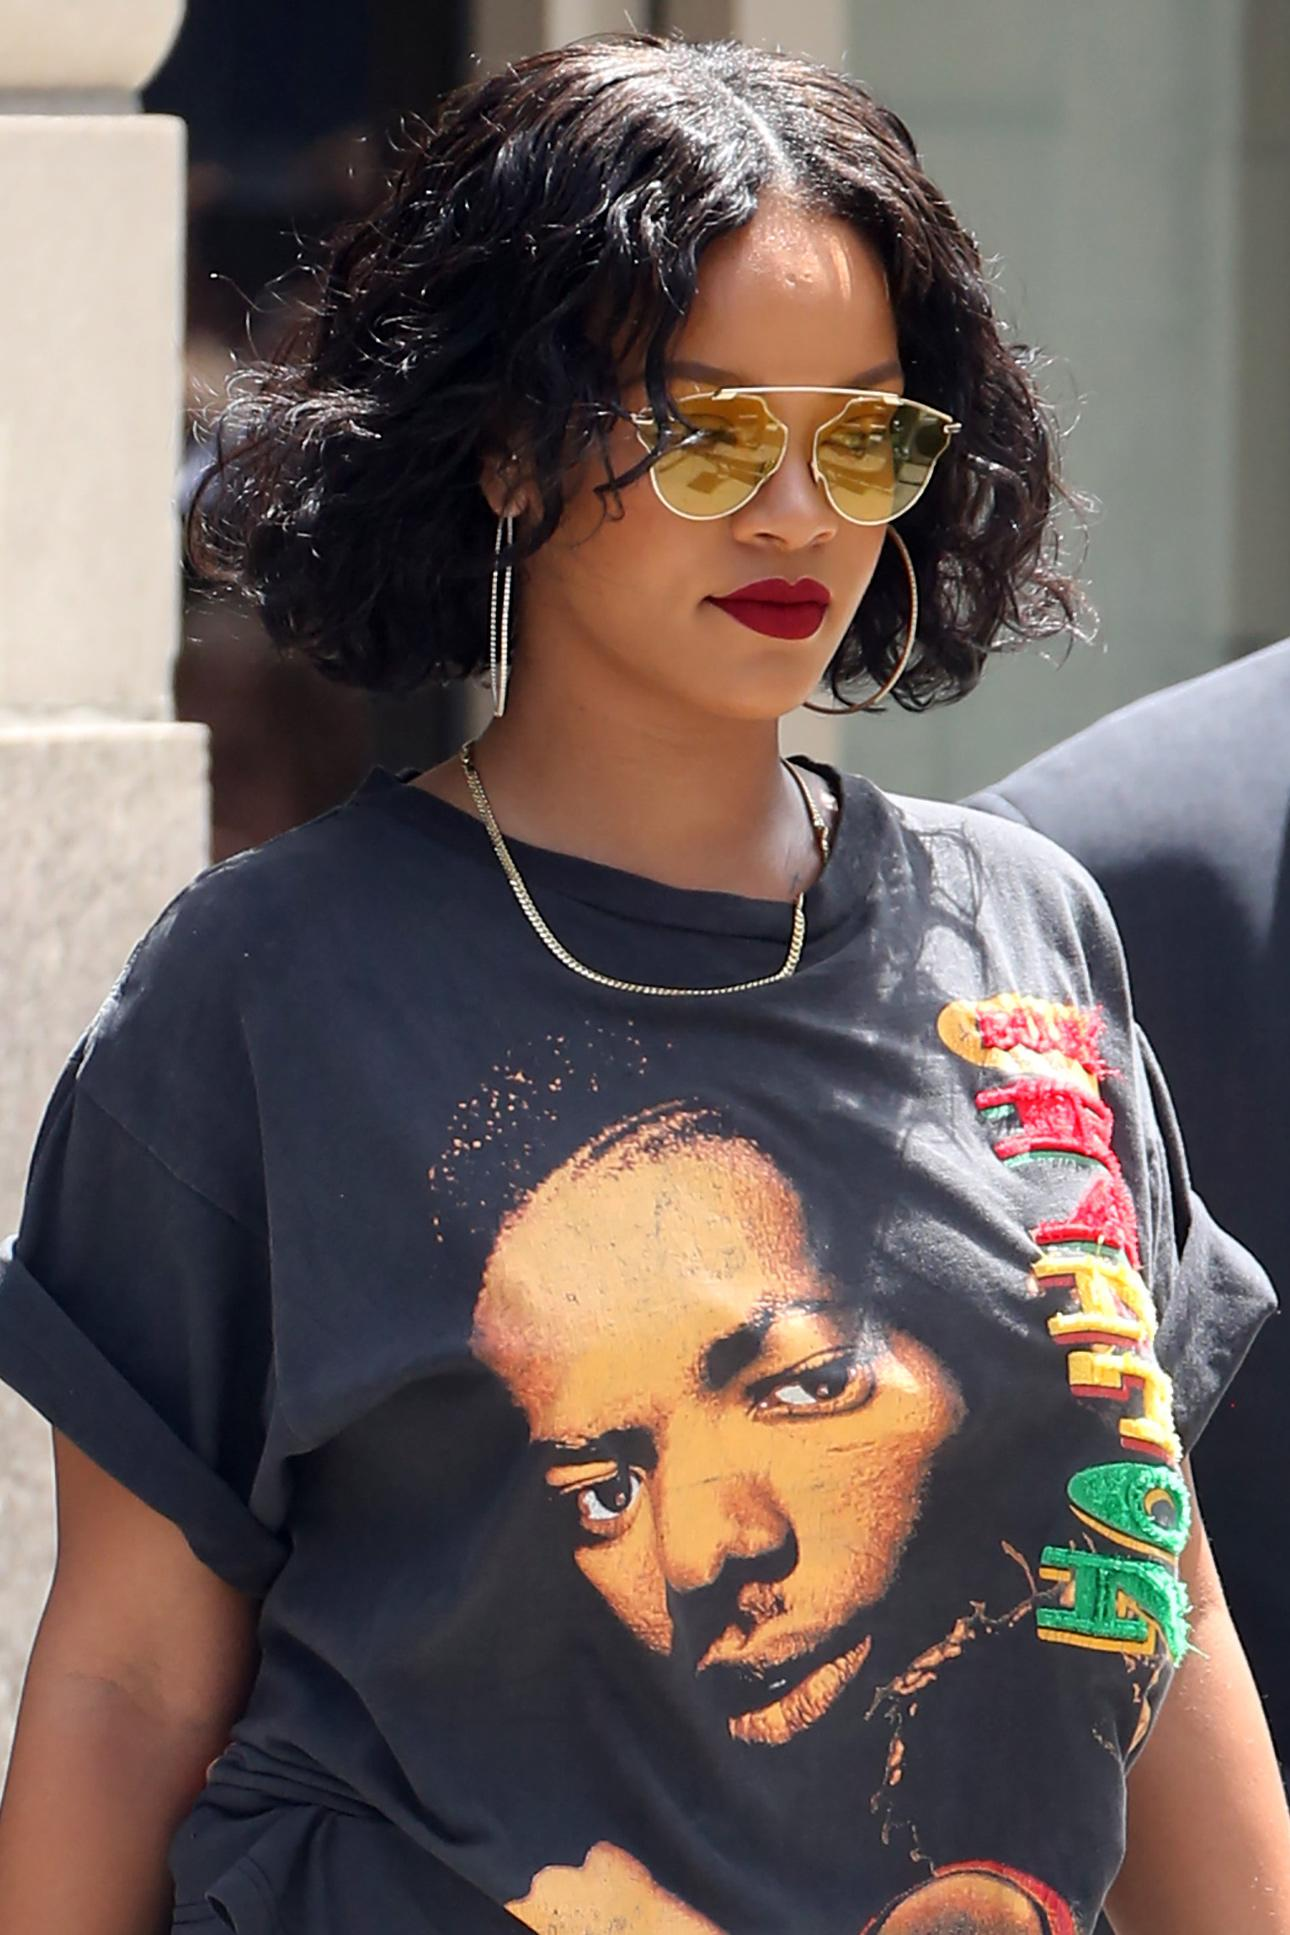 a12c3433ae79 You Can Finally Purchase Those Dior Sunglasses All Your Favorite Celebs Love